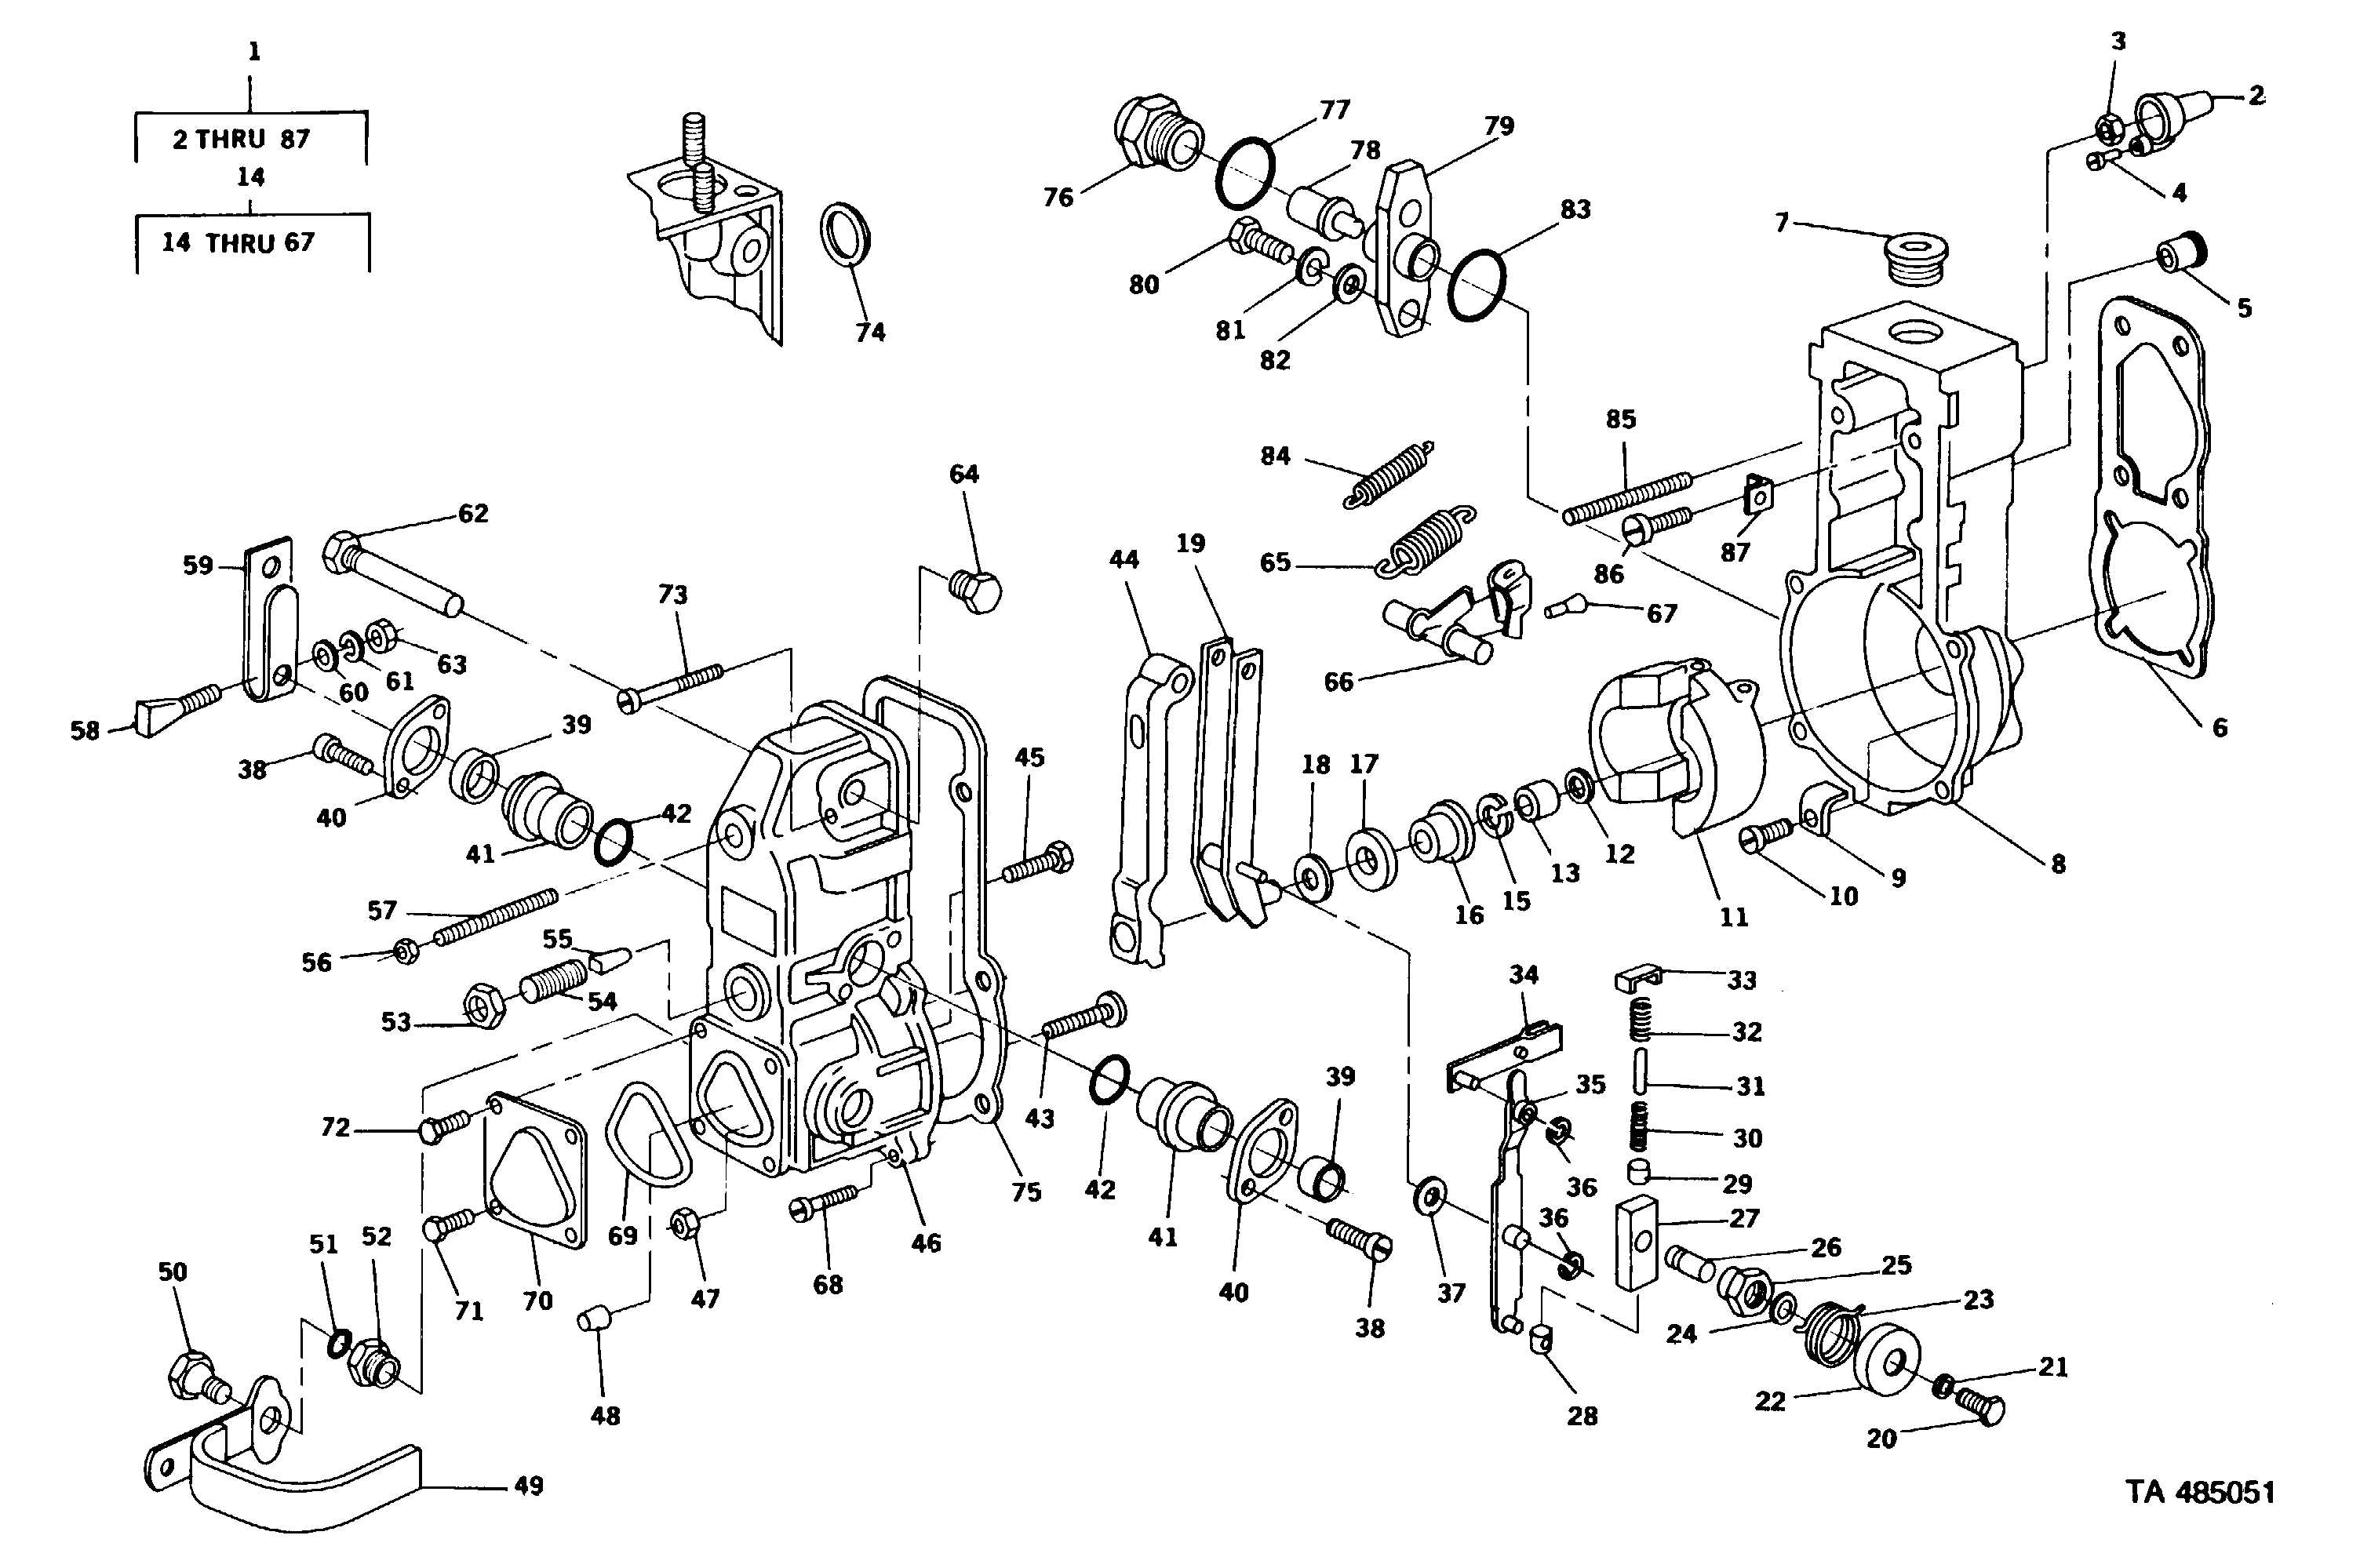 Figure 23. Governor Diesel Engine Assembly